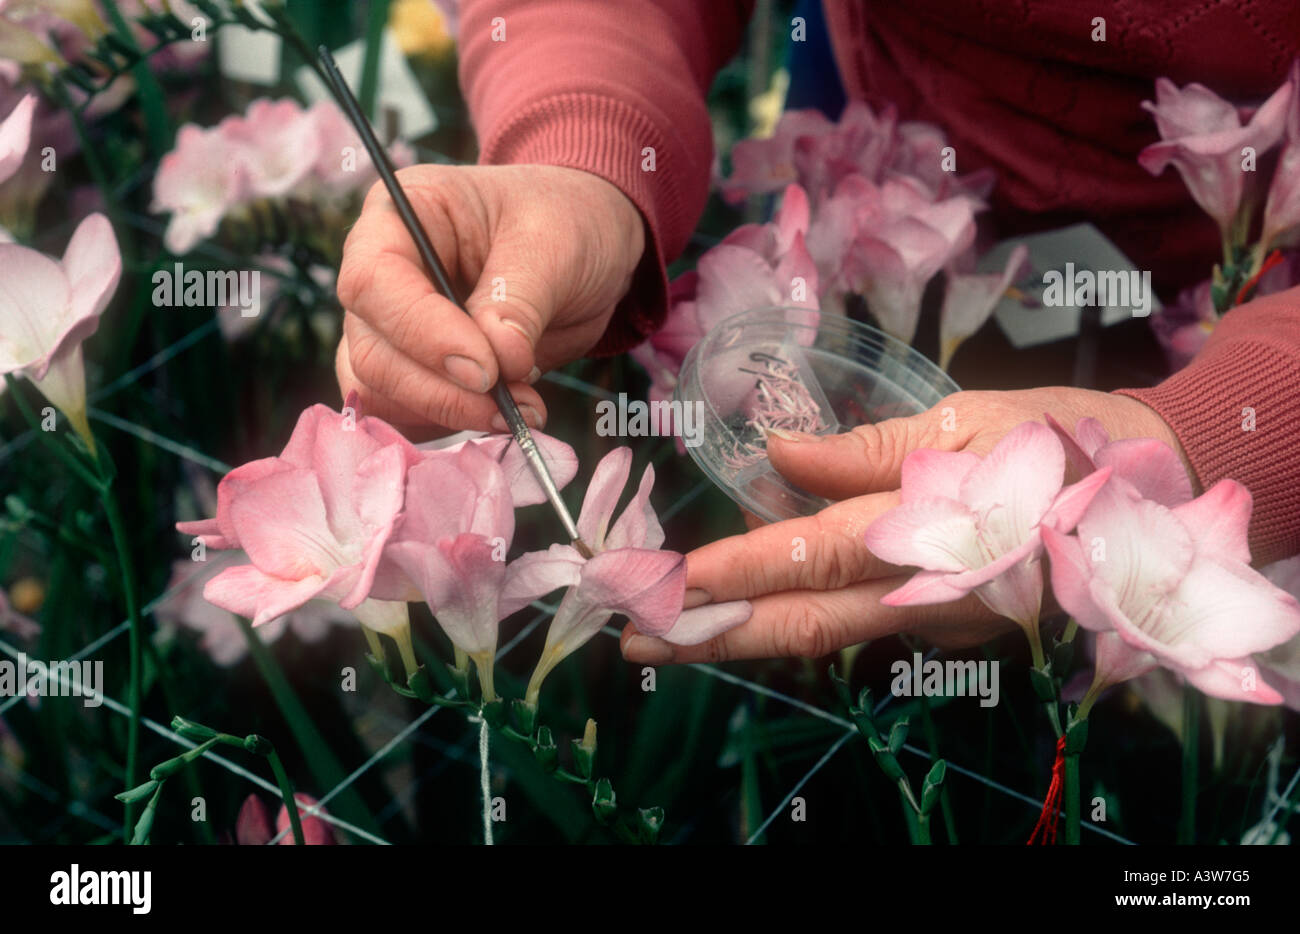 Small artists paint brush cross pollinating freesia flowers in a commercial glasshouse - Stock Image